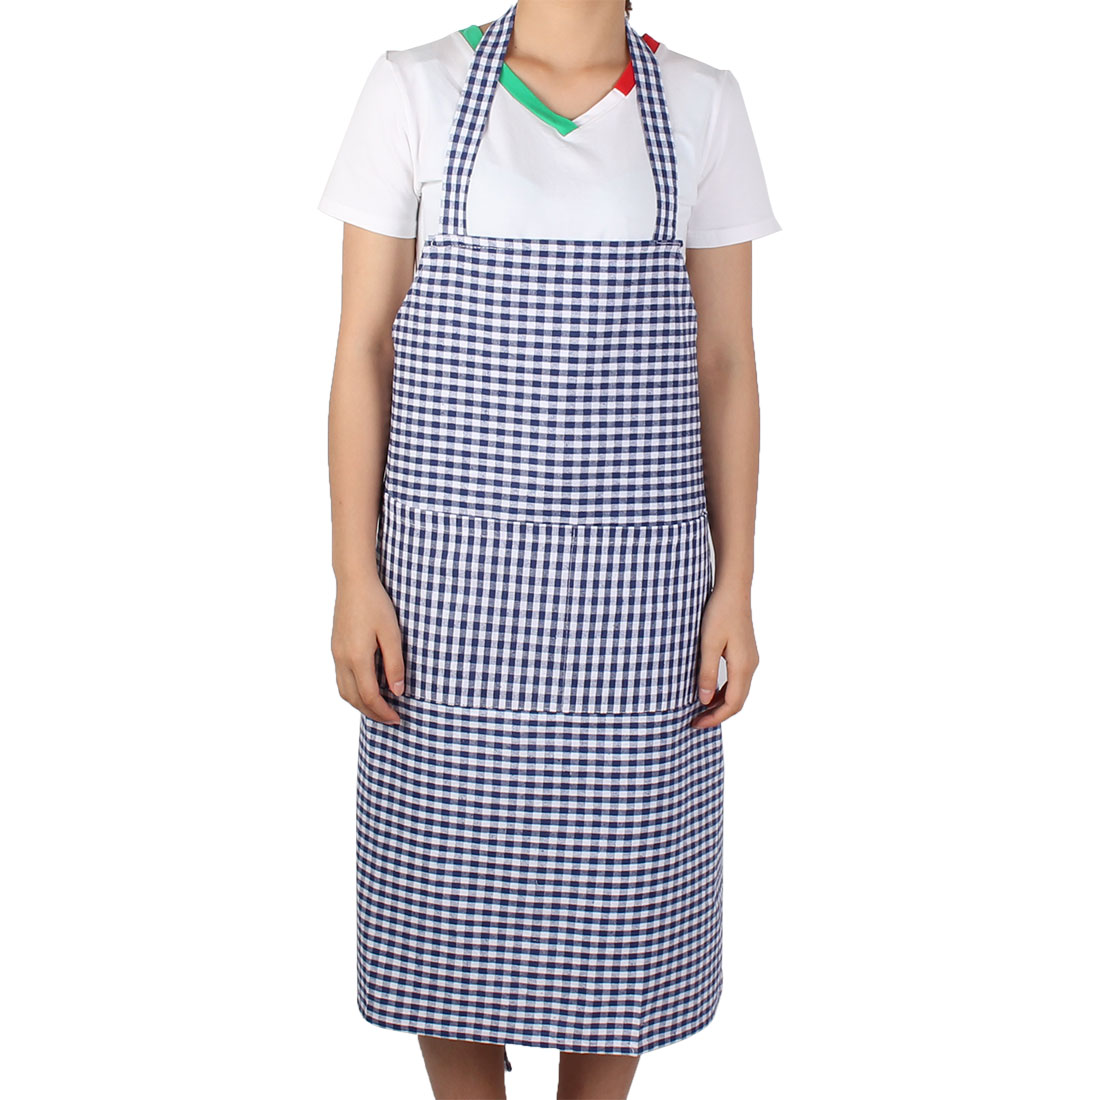 Home Kitchen Housework Pastoral Style Grid Pattern Cooking Baking Apron Dark Blue